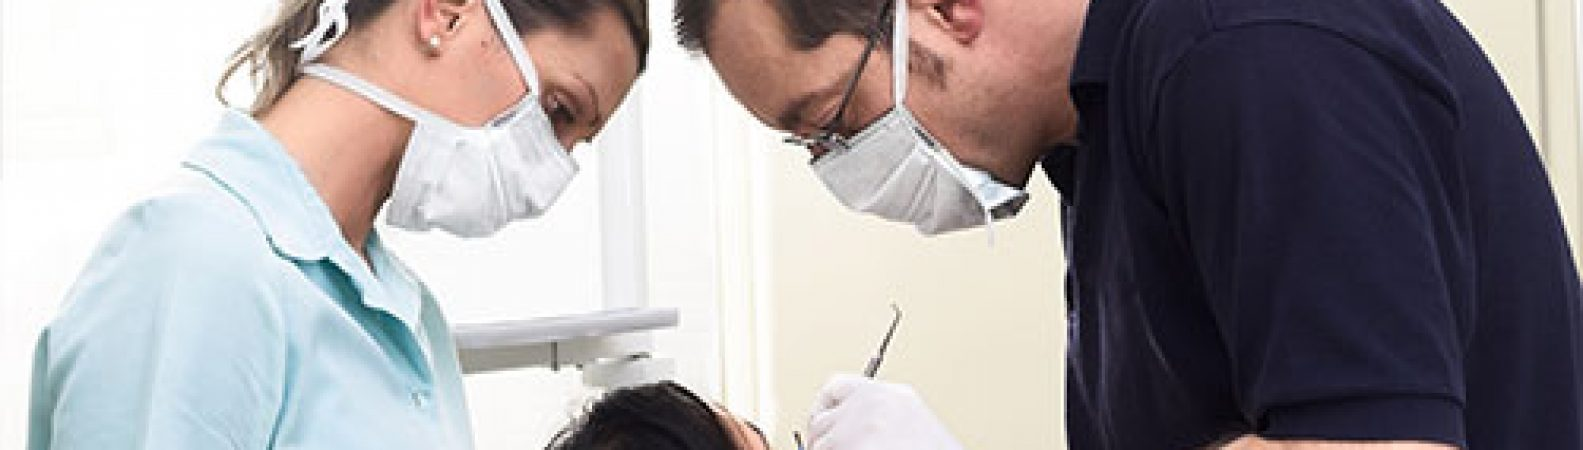 Are You Prepared For A Dental Emergency? [QUIZ]